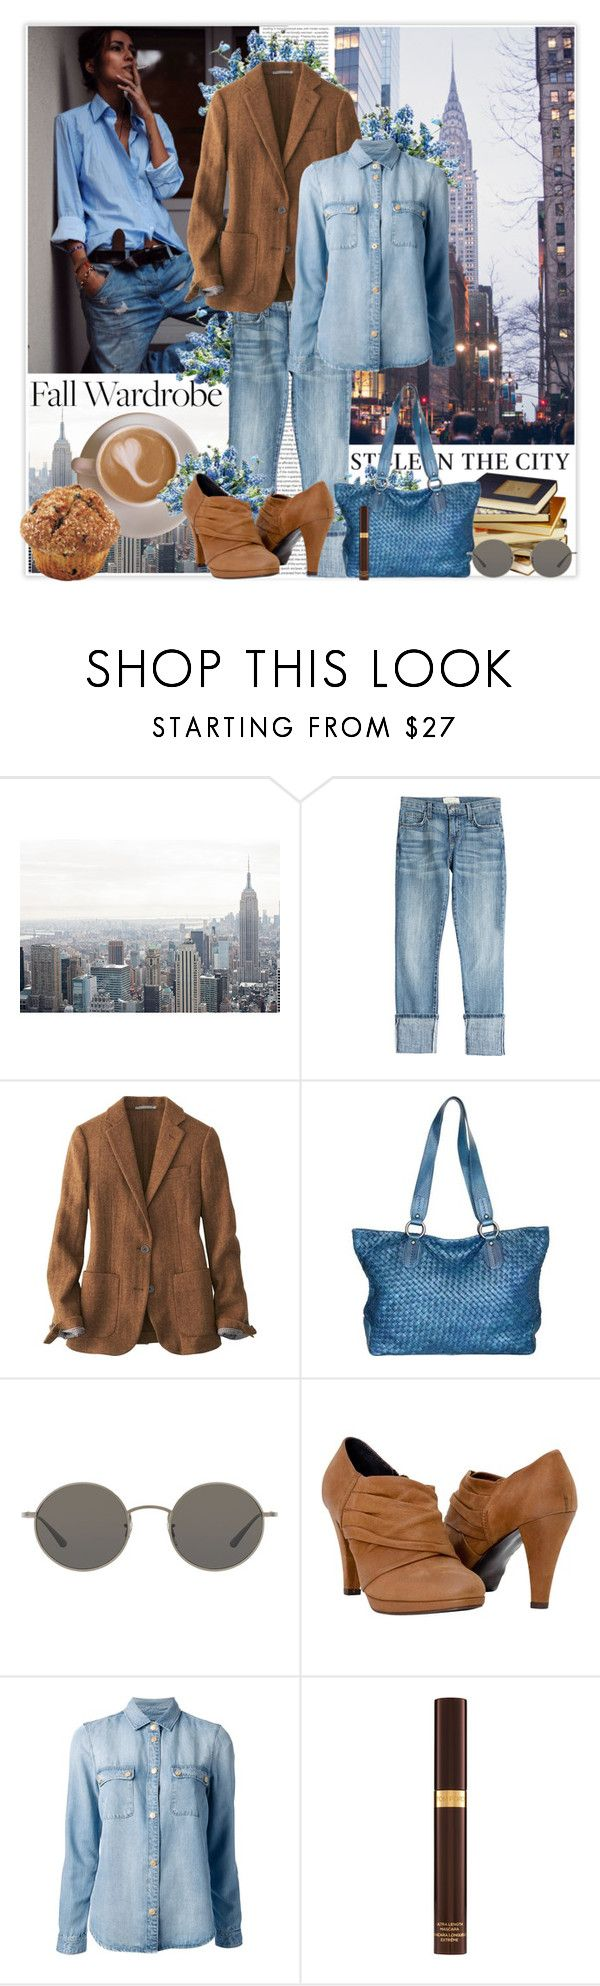 """M comme Mode de vie !!! 88"" by vicky-soleil ❤ liked on Polyvore featuring Oris, Current/Elliott, Public Library, Uniqlo, Nino Bossi Handbags, Oliver Peoples, 7 For All Mankind and Tom Ford"